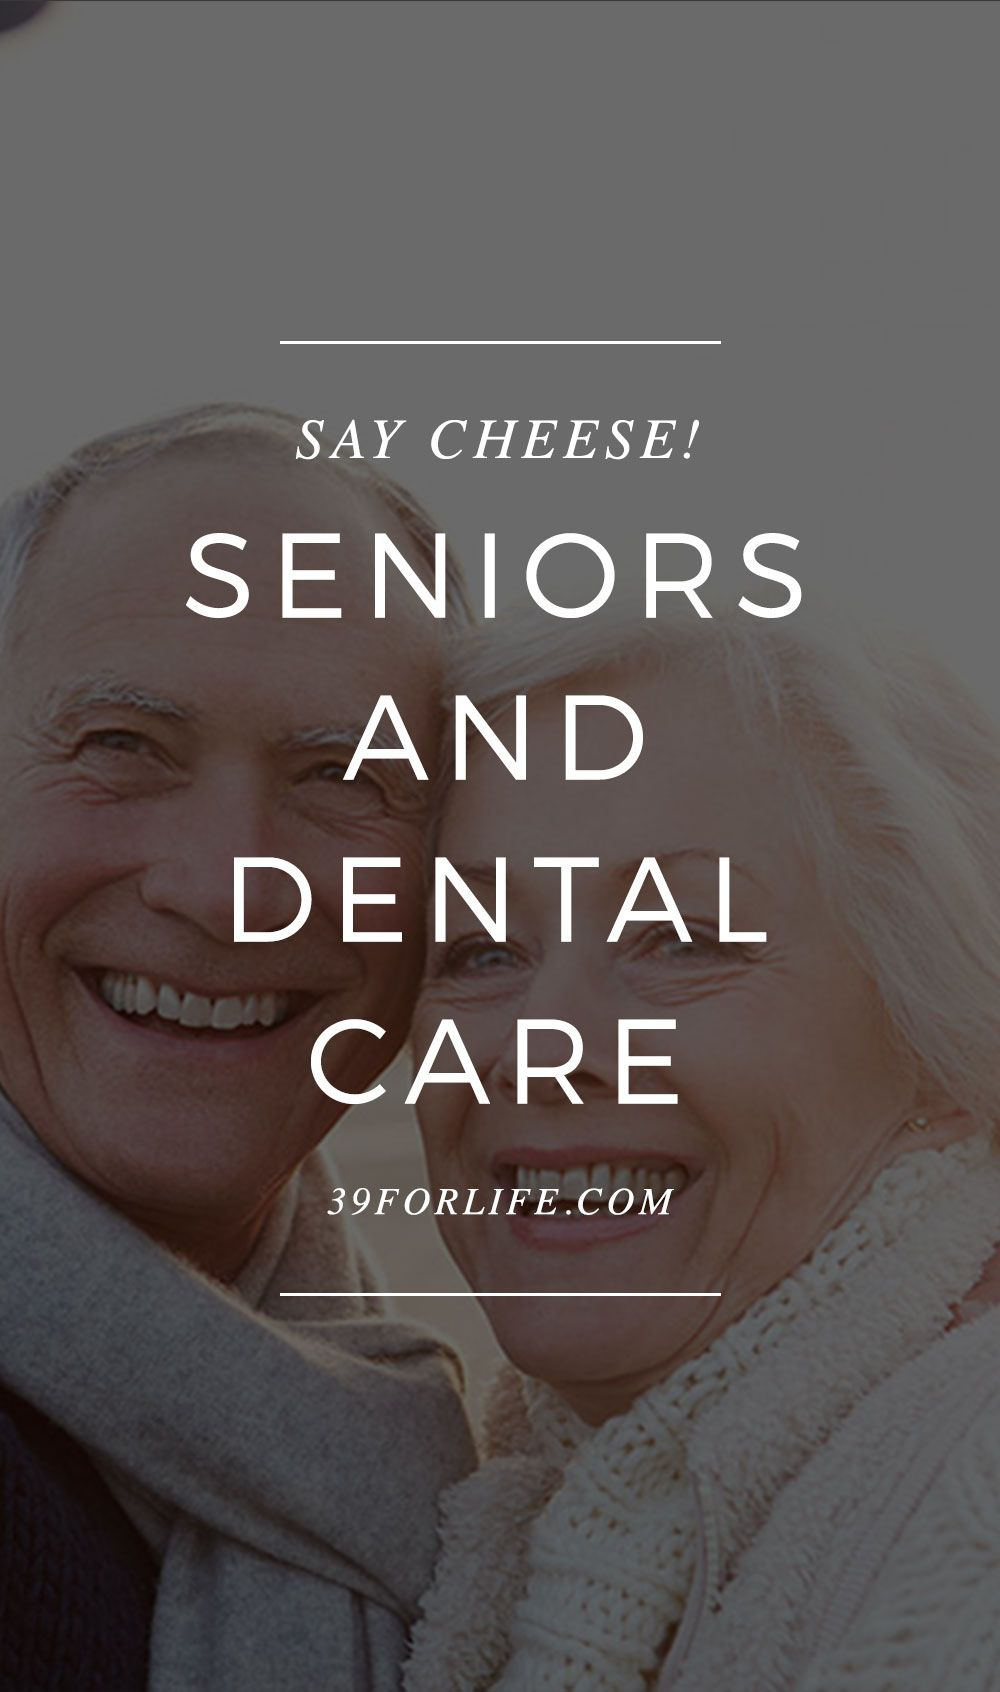 Seniors and dental care it's something worth smiling